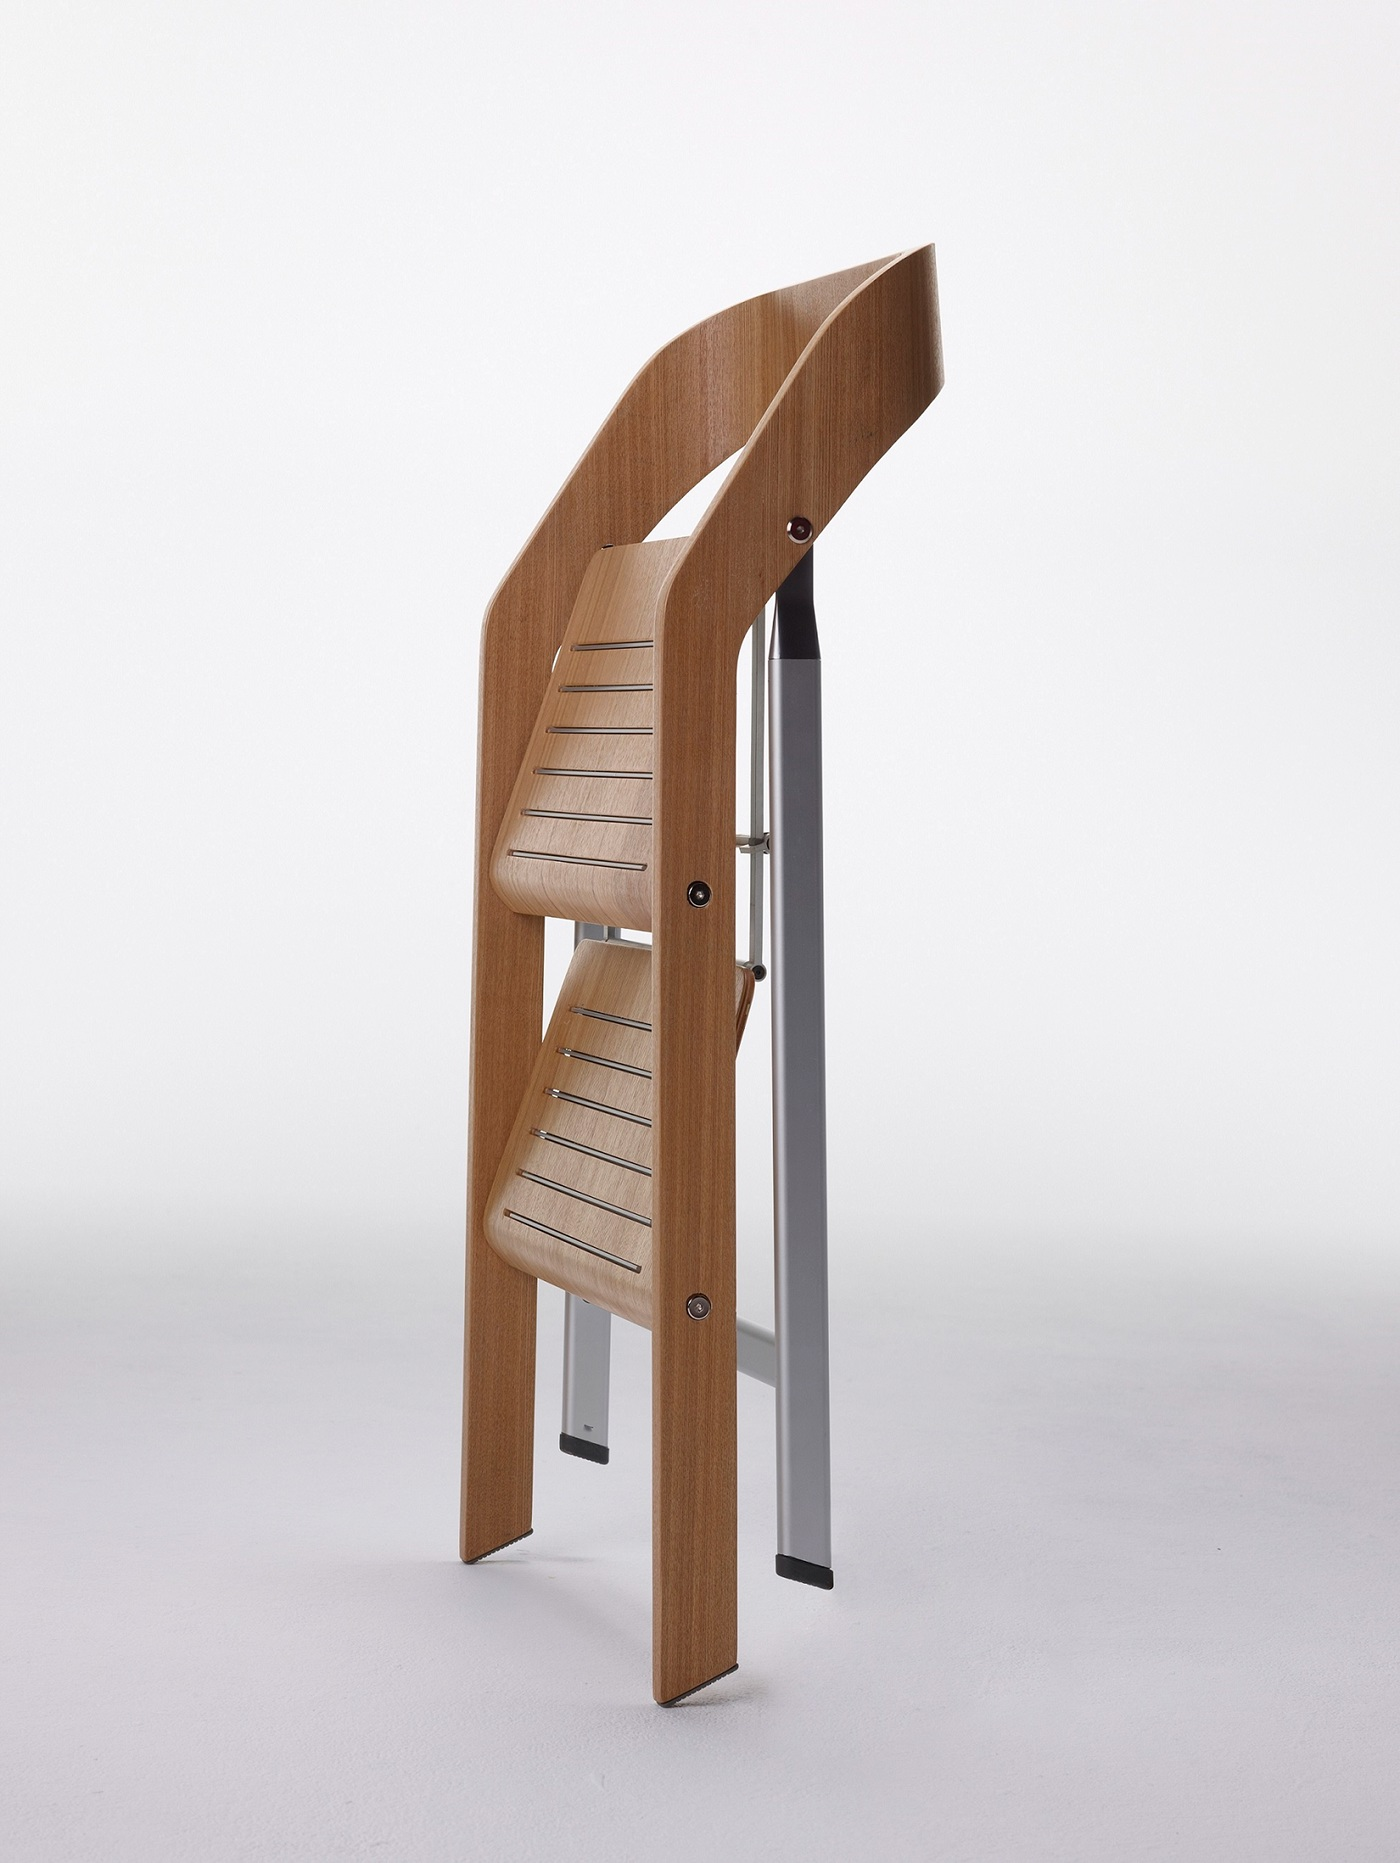 Pleasant Usit Finally A Chair Safe To Climb On Behance Caraccident5 Cool Chair Designs And Ideas Caraccident5Info